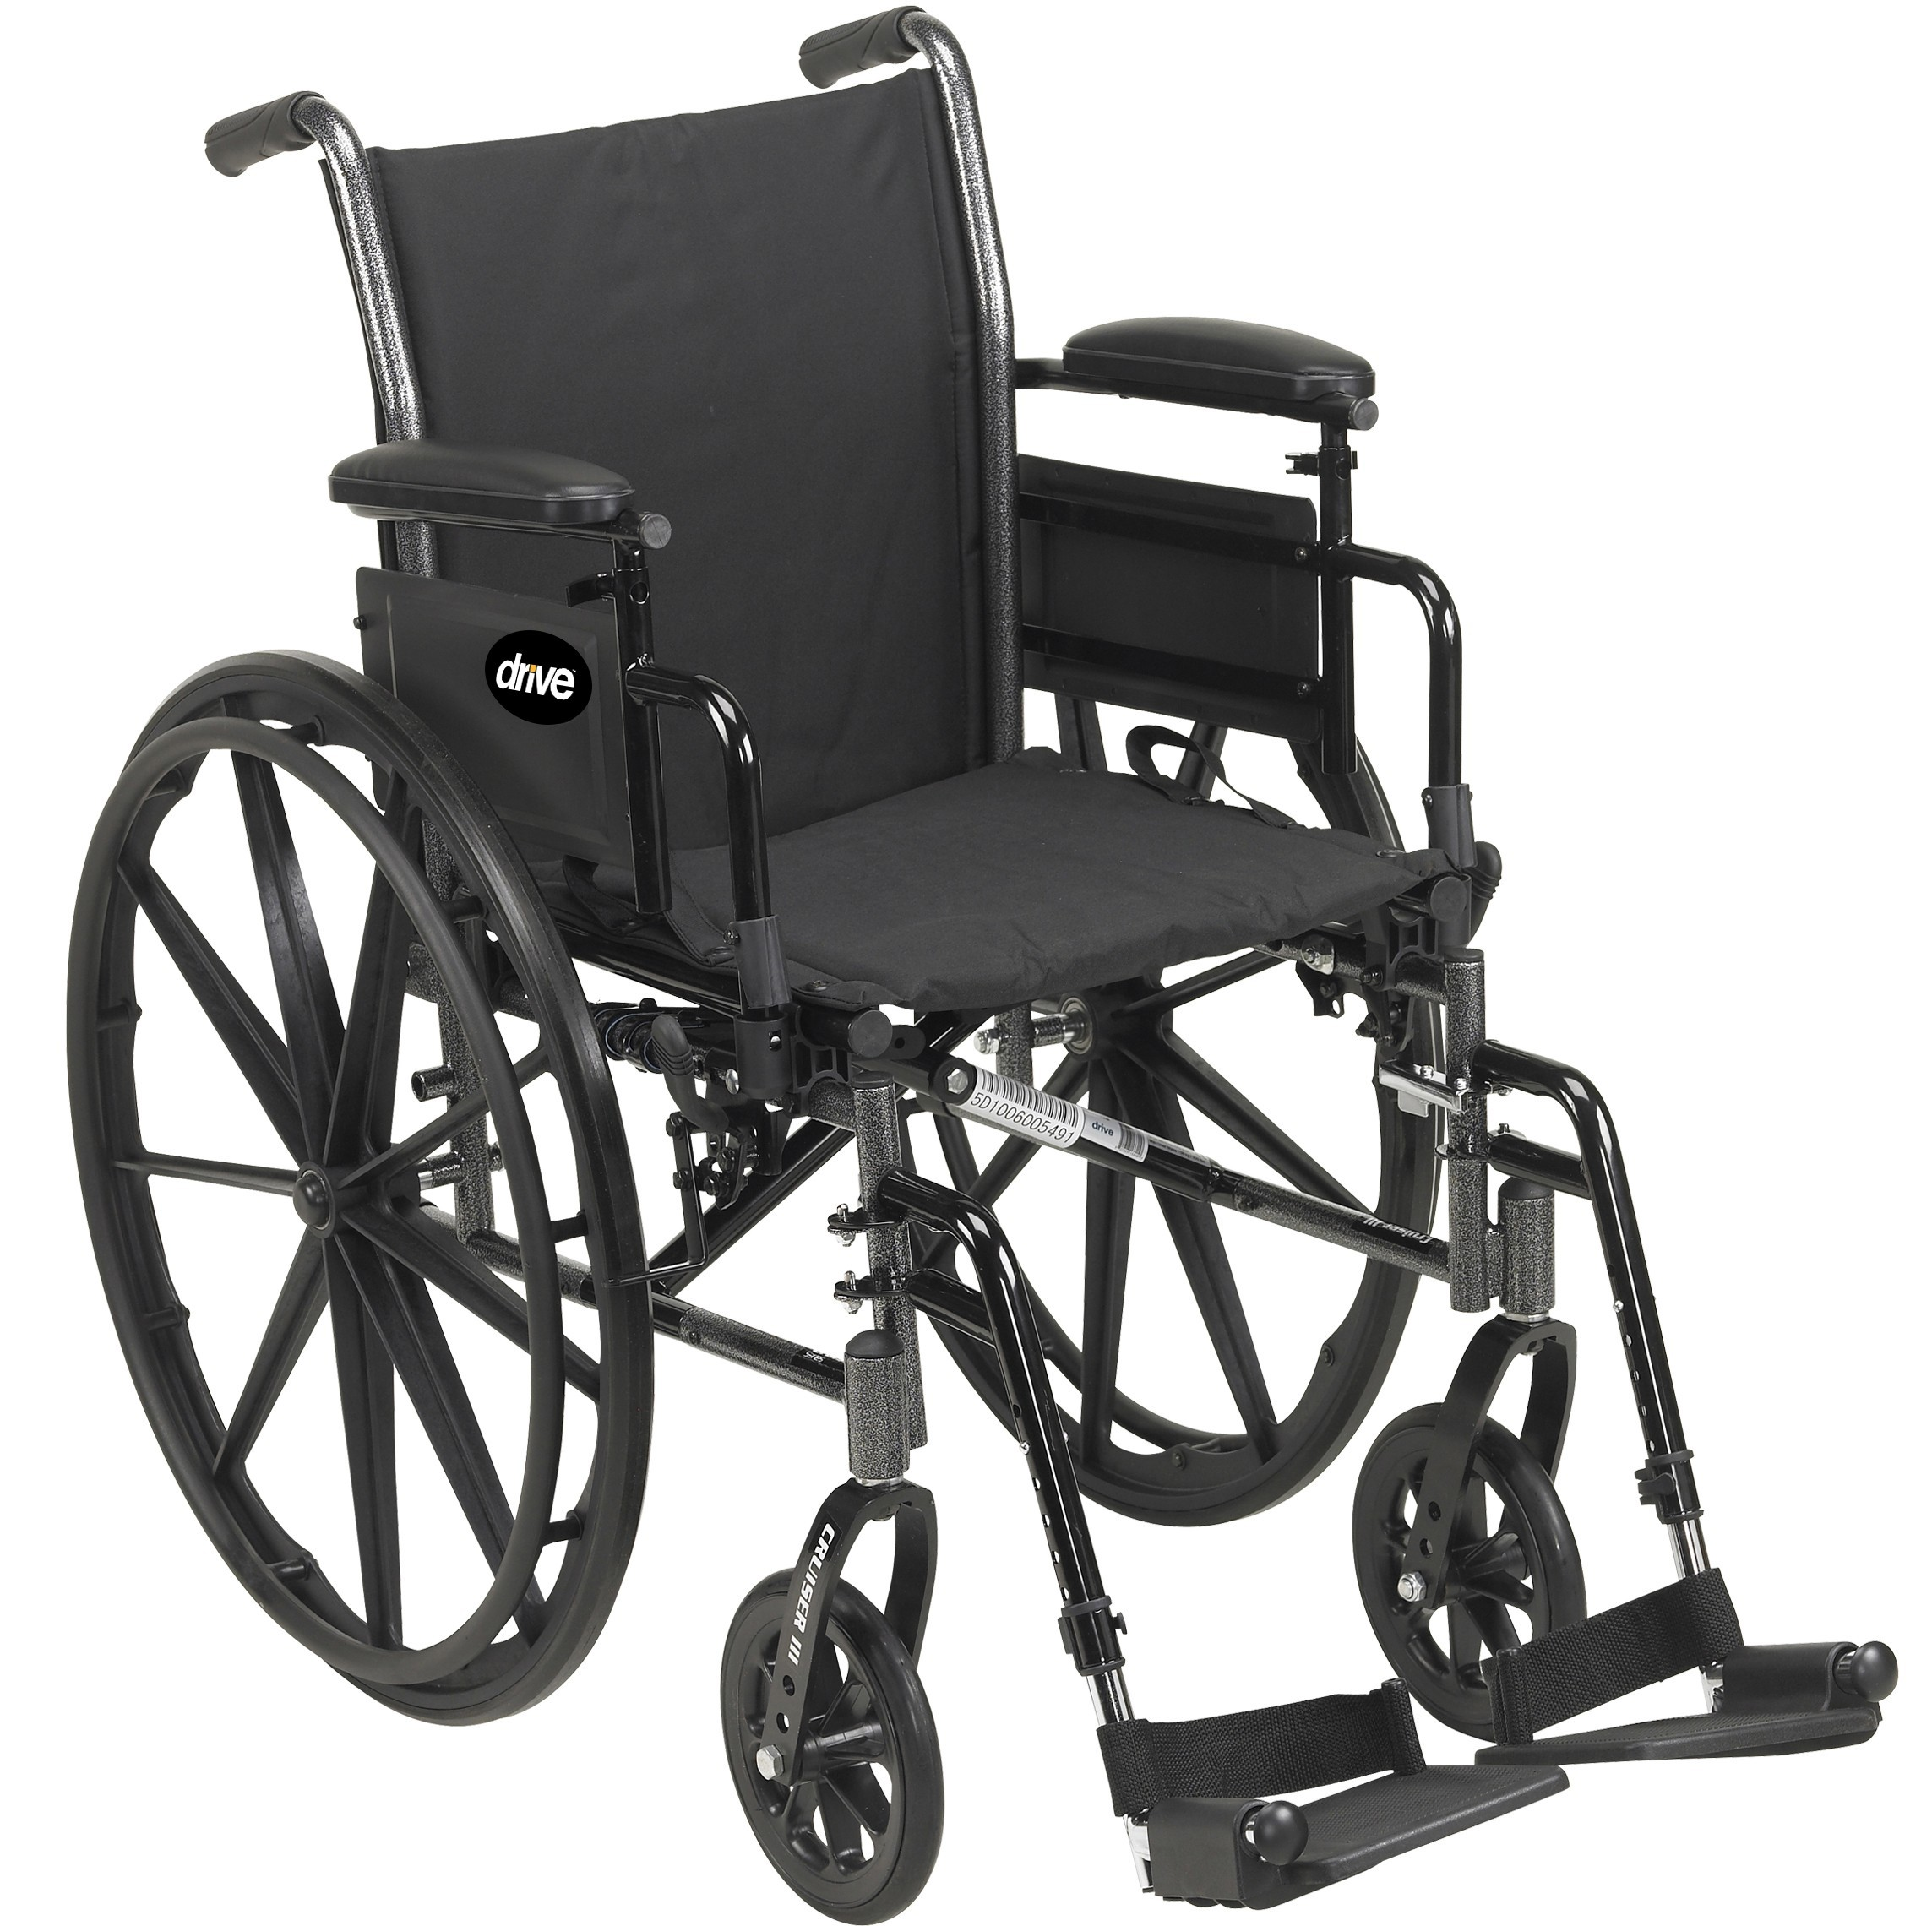 Rental Wheelchair Light Weight